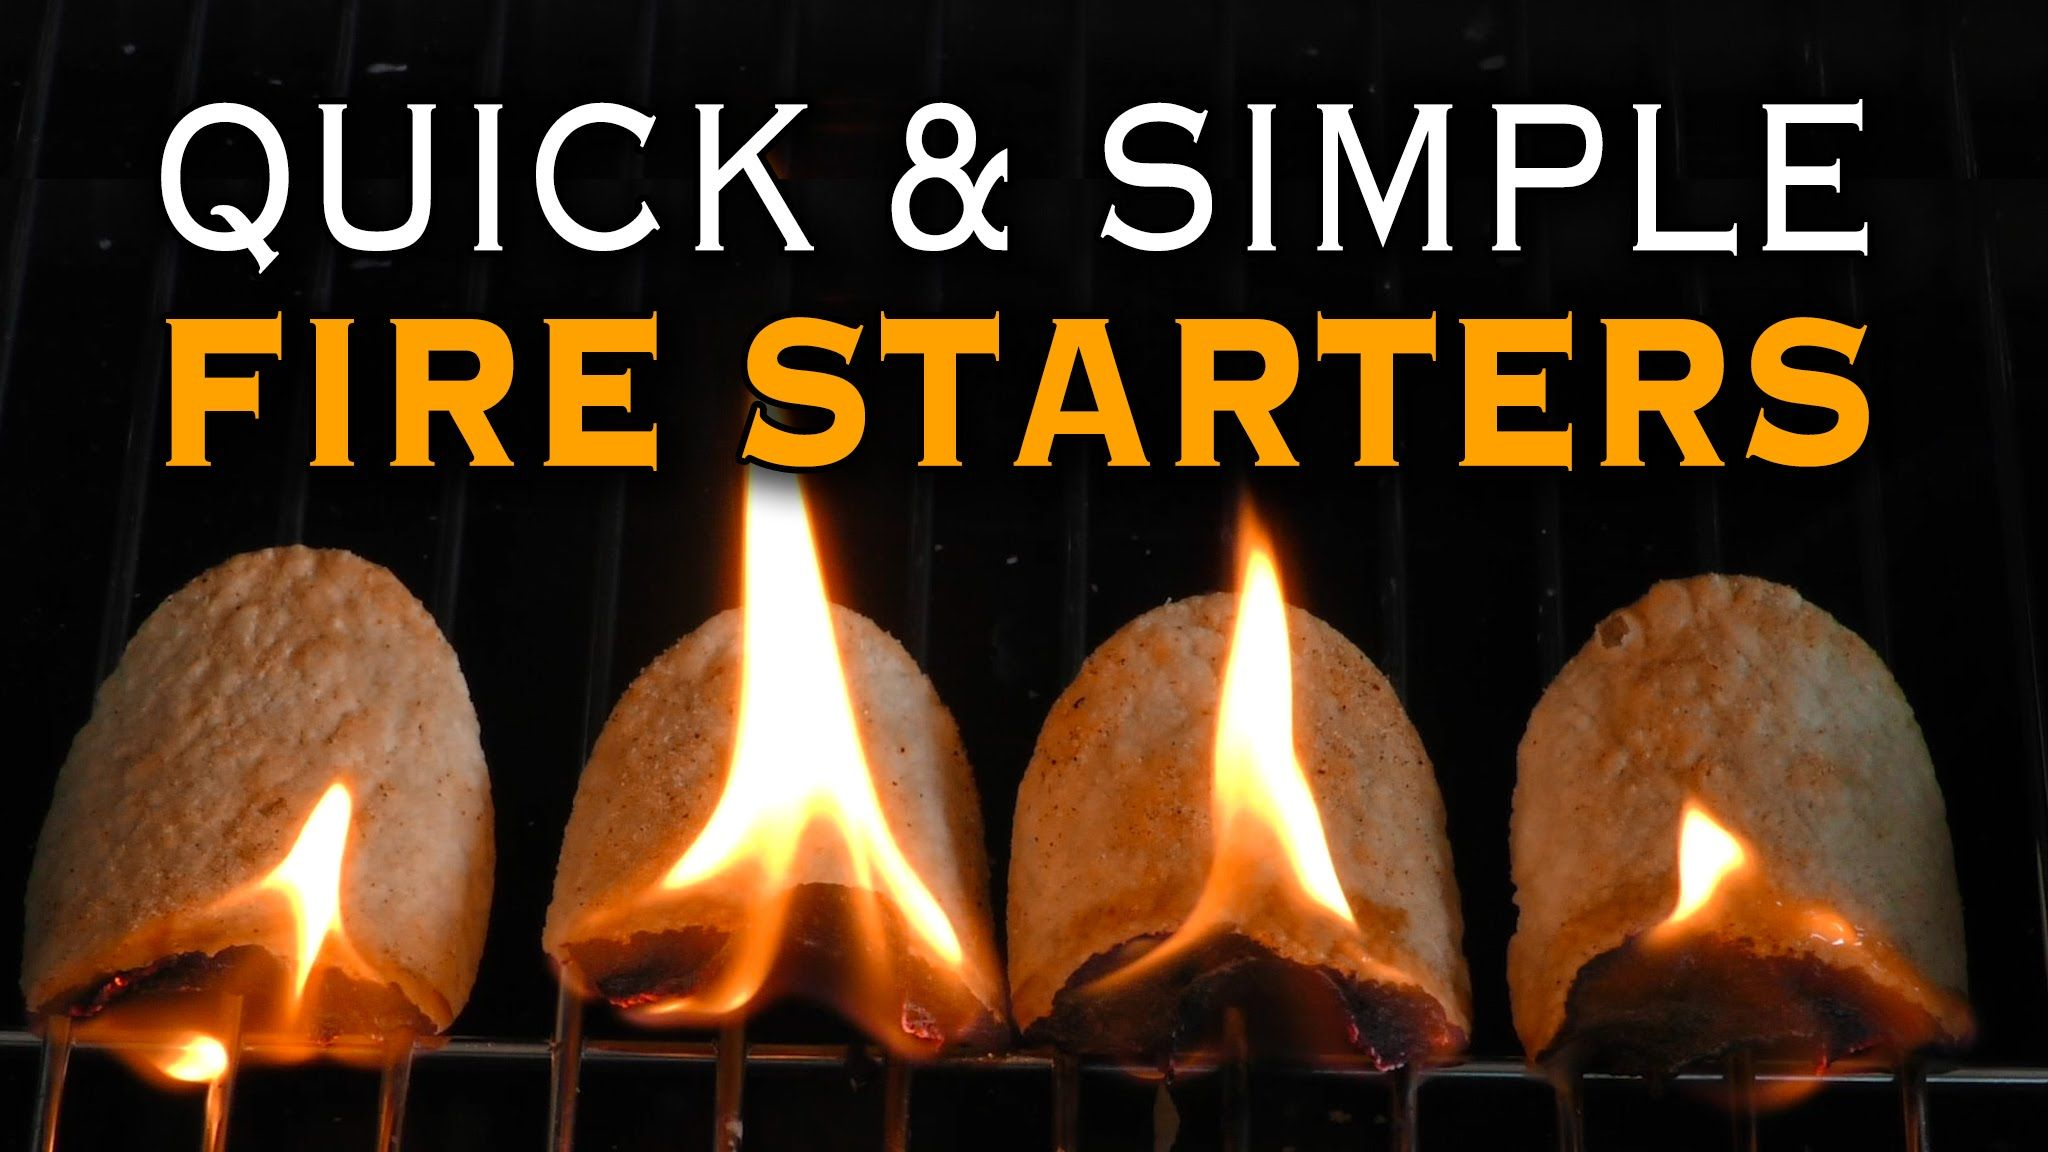 How To Start A Fire With Household Items Fire Starters Diy Fire